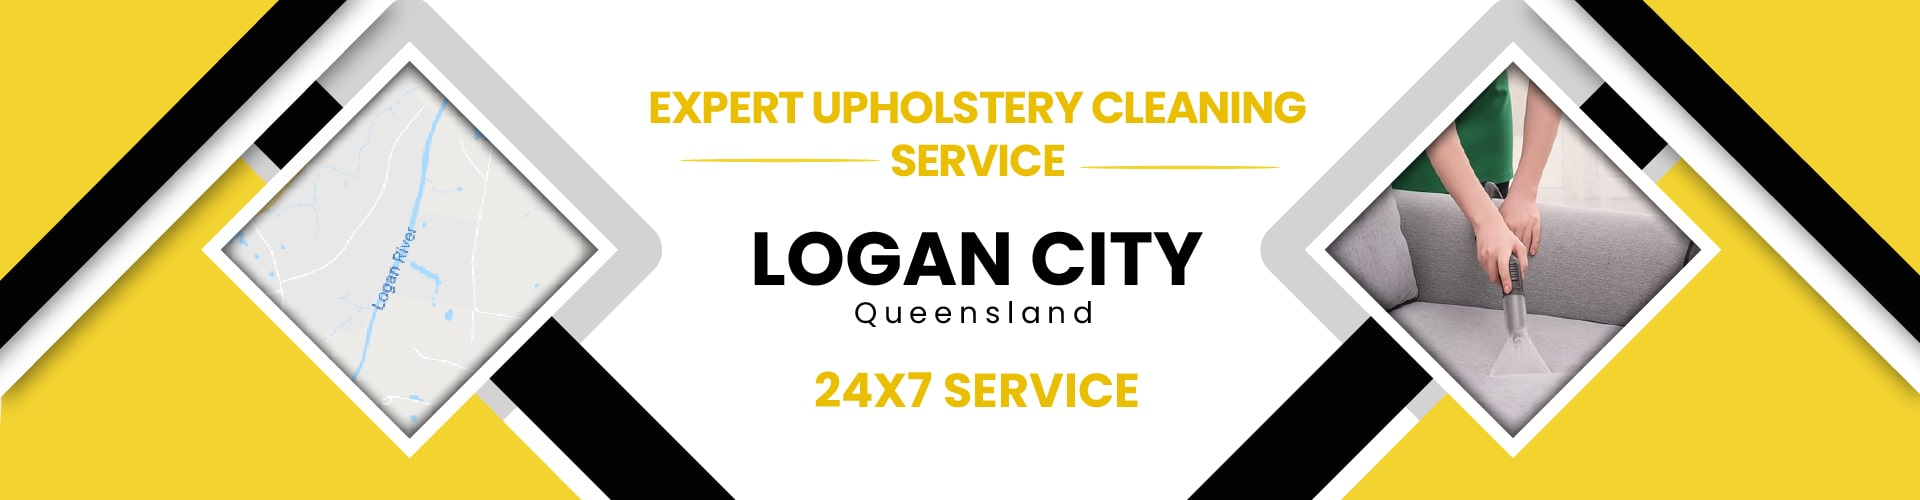 Upholstery Cleaning Logan City